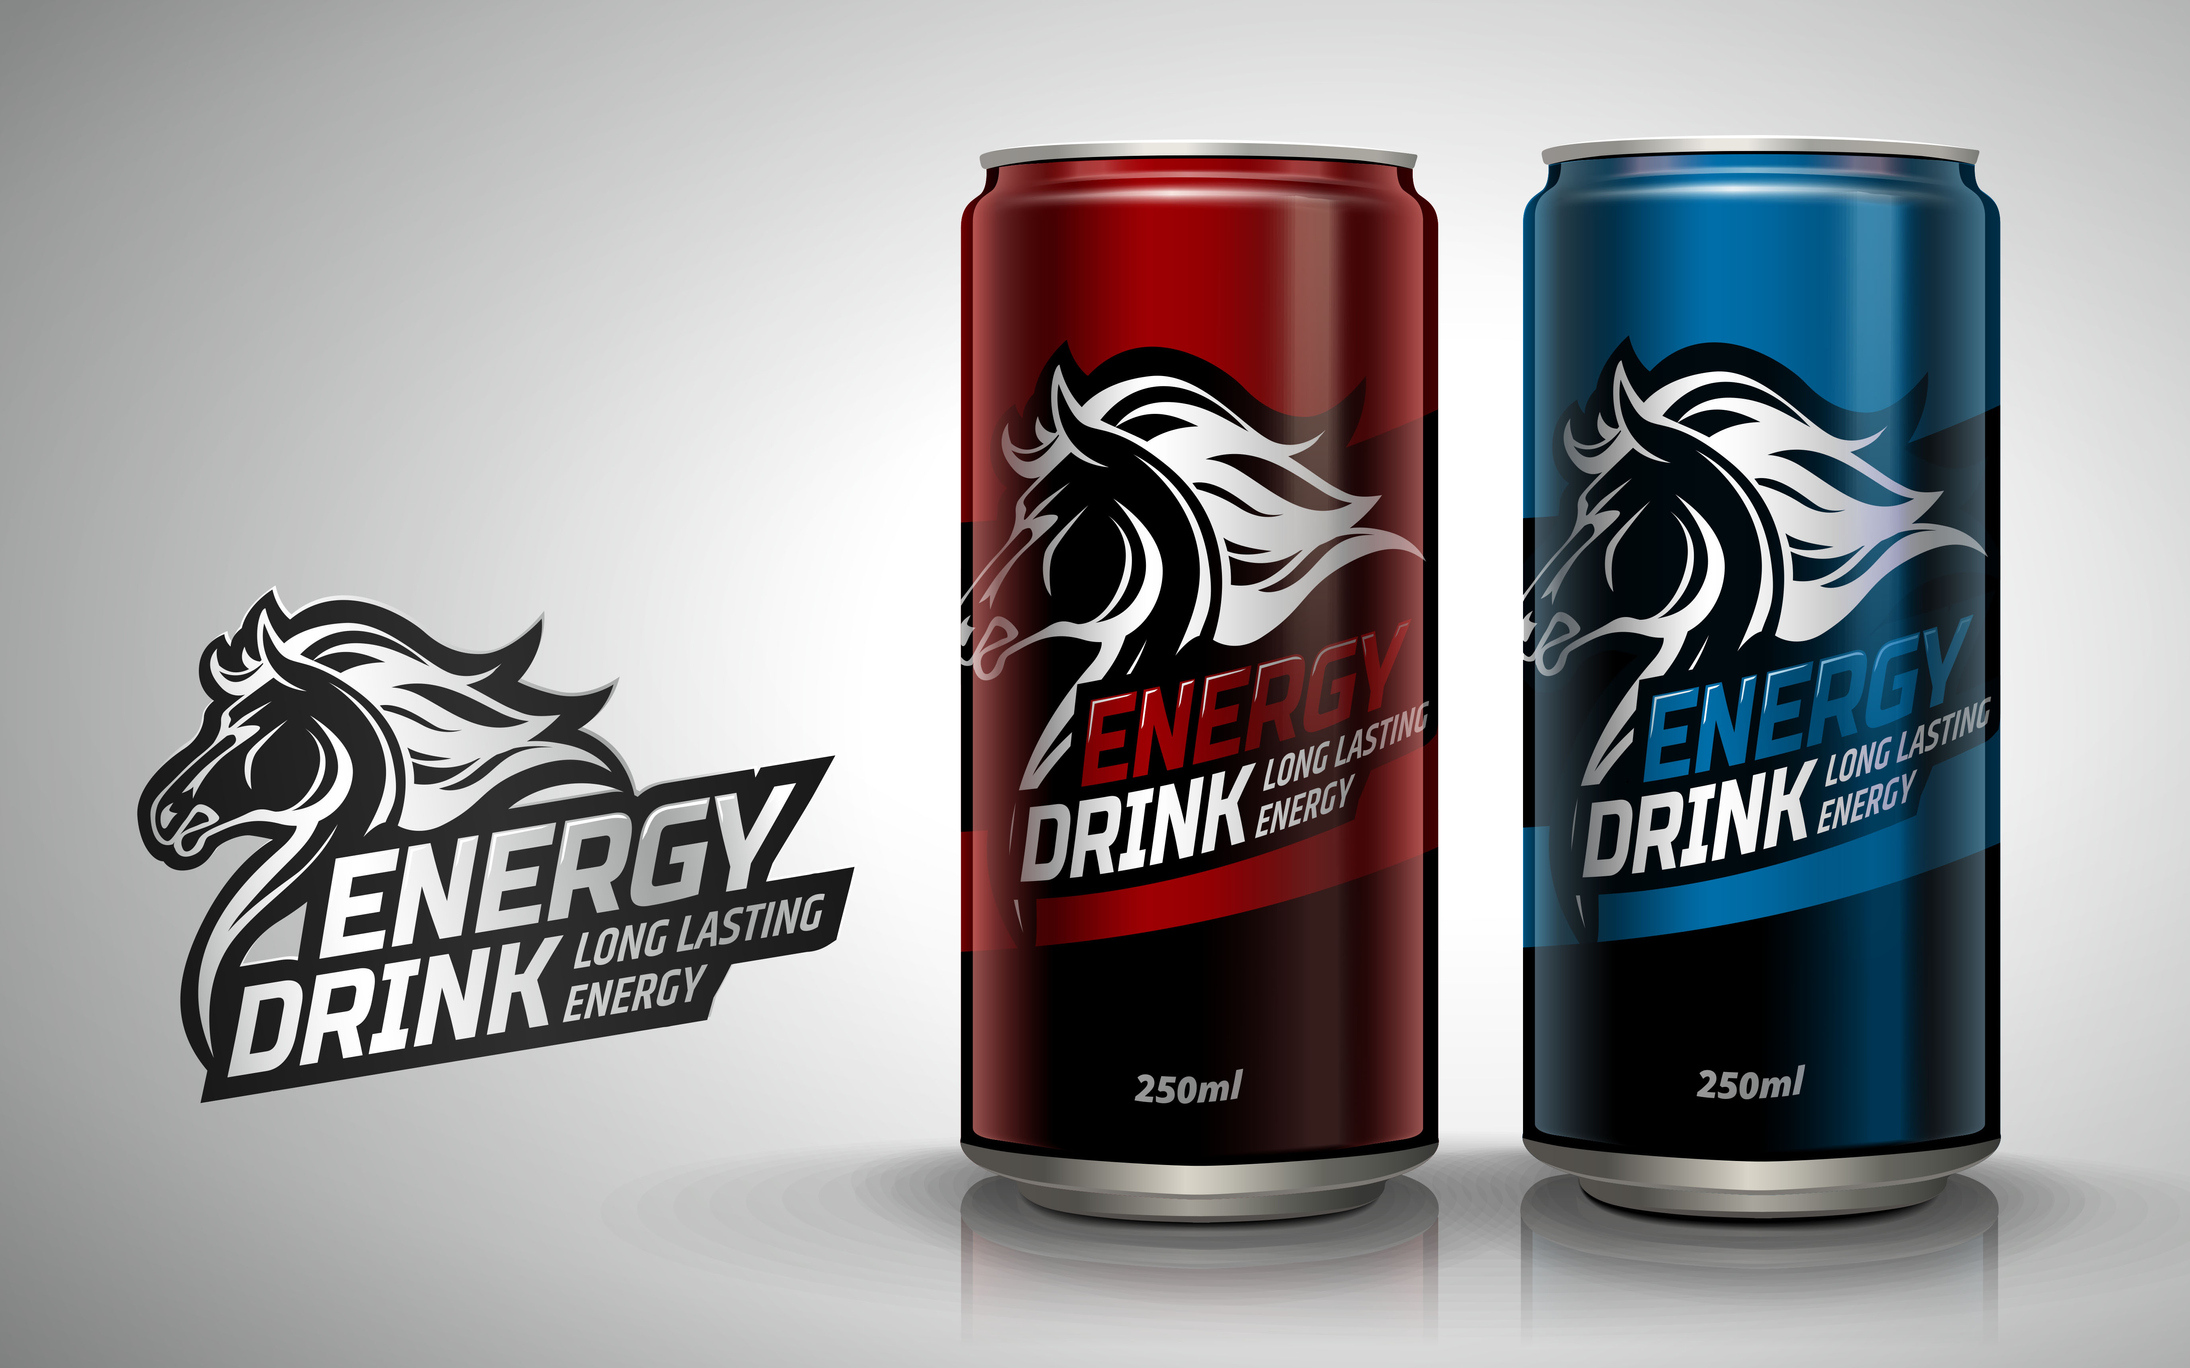 Colour Psychology: It's Red For Taiwan And Blue For Japan When It Comes To Energy Drink Labels photo